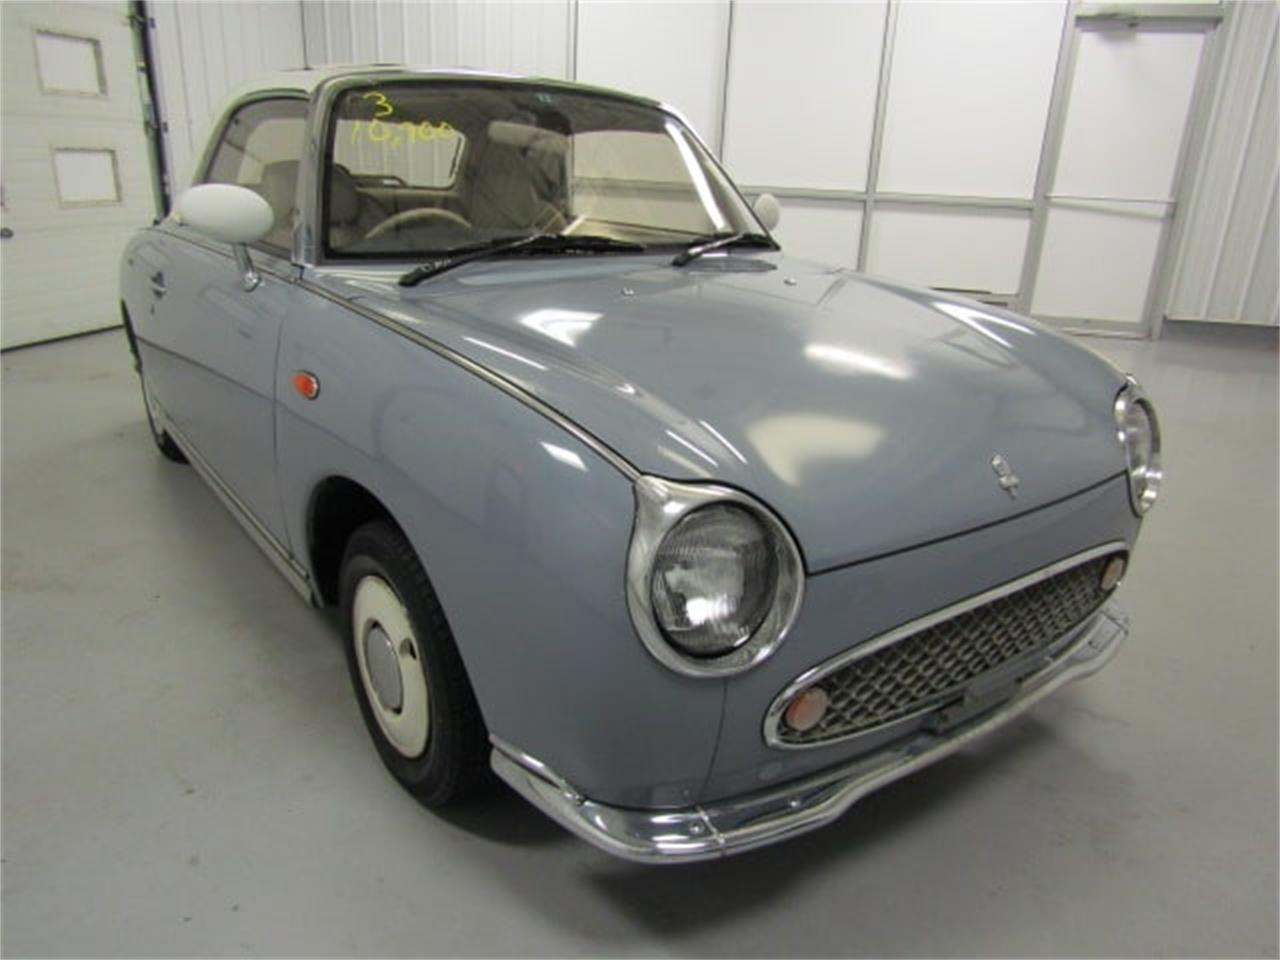 Large Picture of 1991 Nissan Figaro located in Virginia - $10,900.00 Offered by Duncan Imports & Classic Cars - JZ1Z